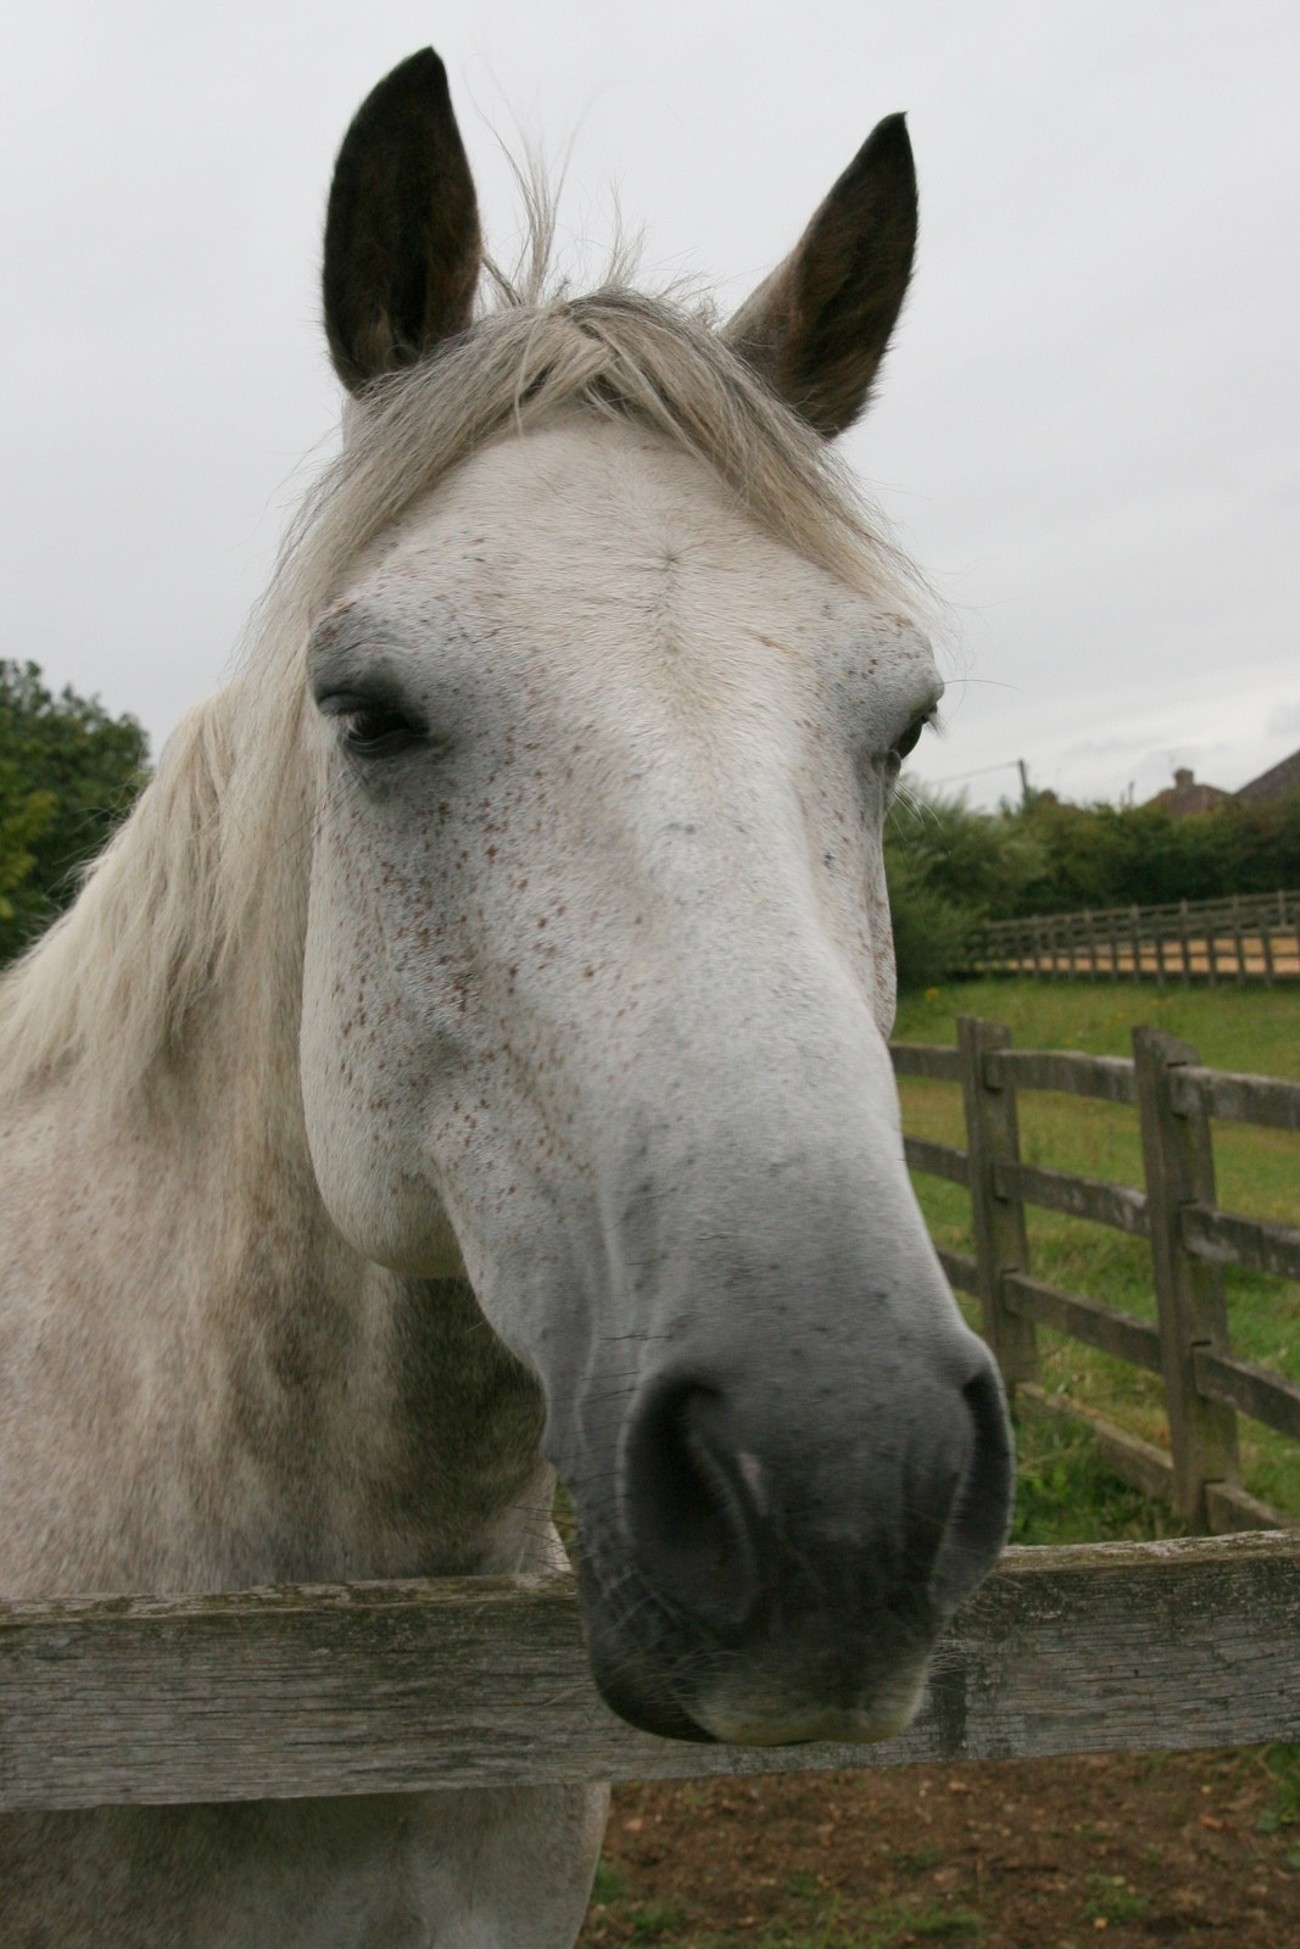 This white horse was always outside near the road. Very friendly and absolutely loved apples, carrots and love getting picture taken now and then.